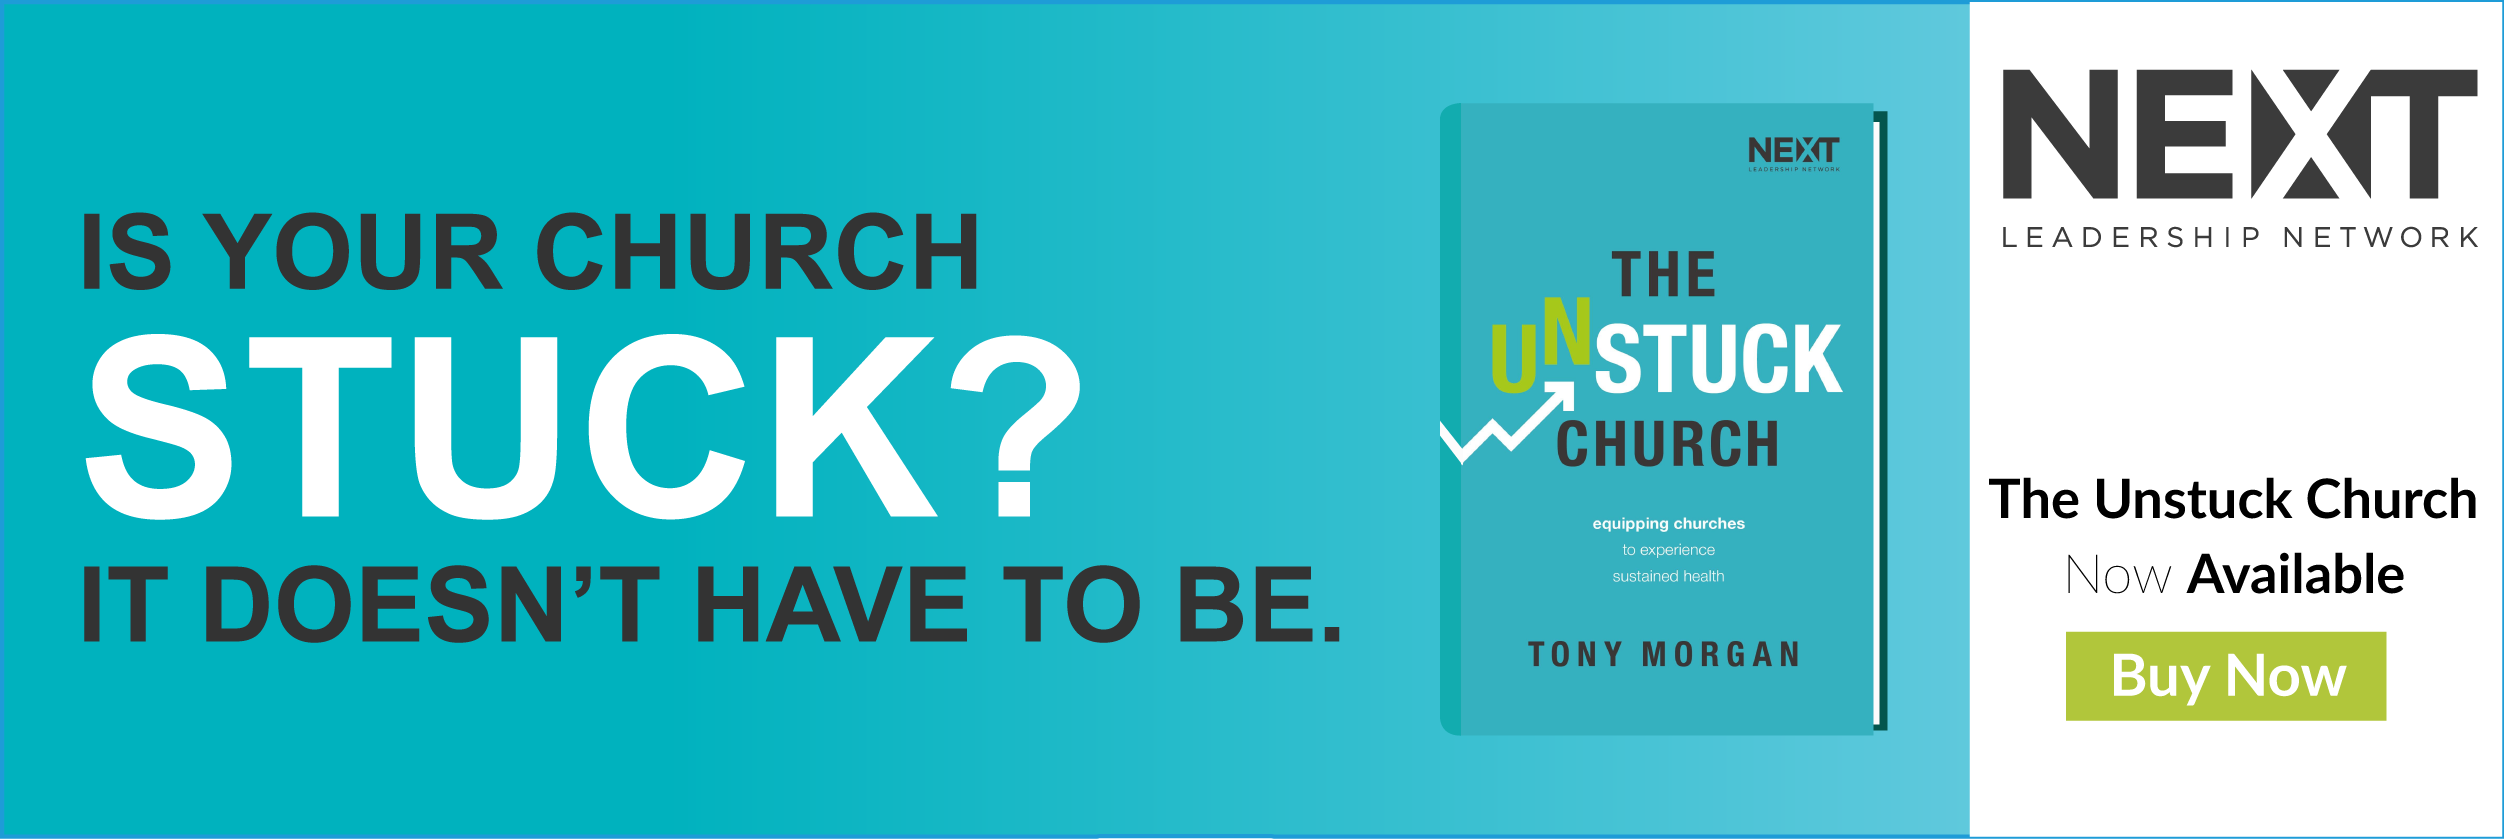 TheUnstuckChurch-Email-2-BuyNow.png